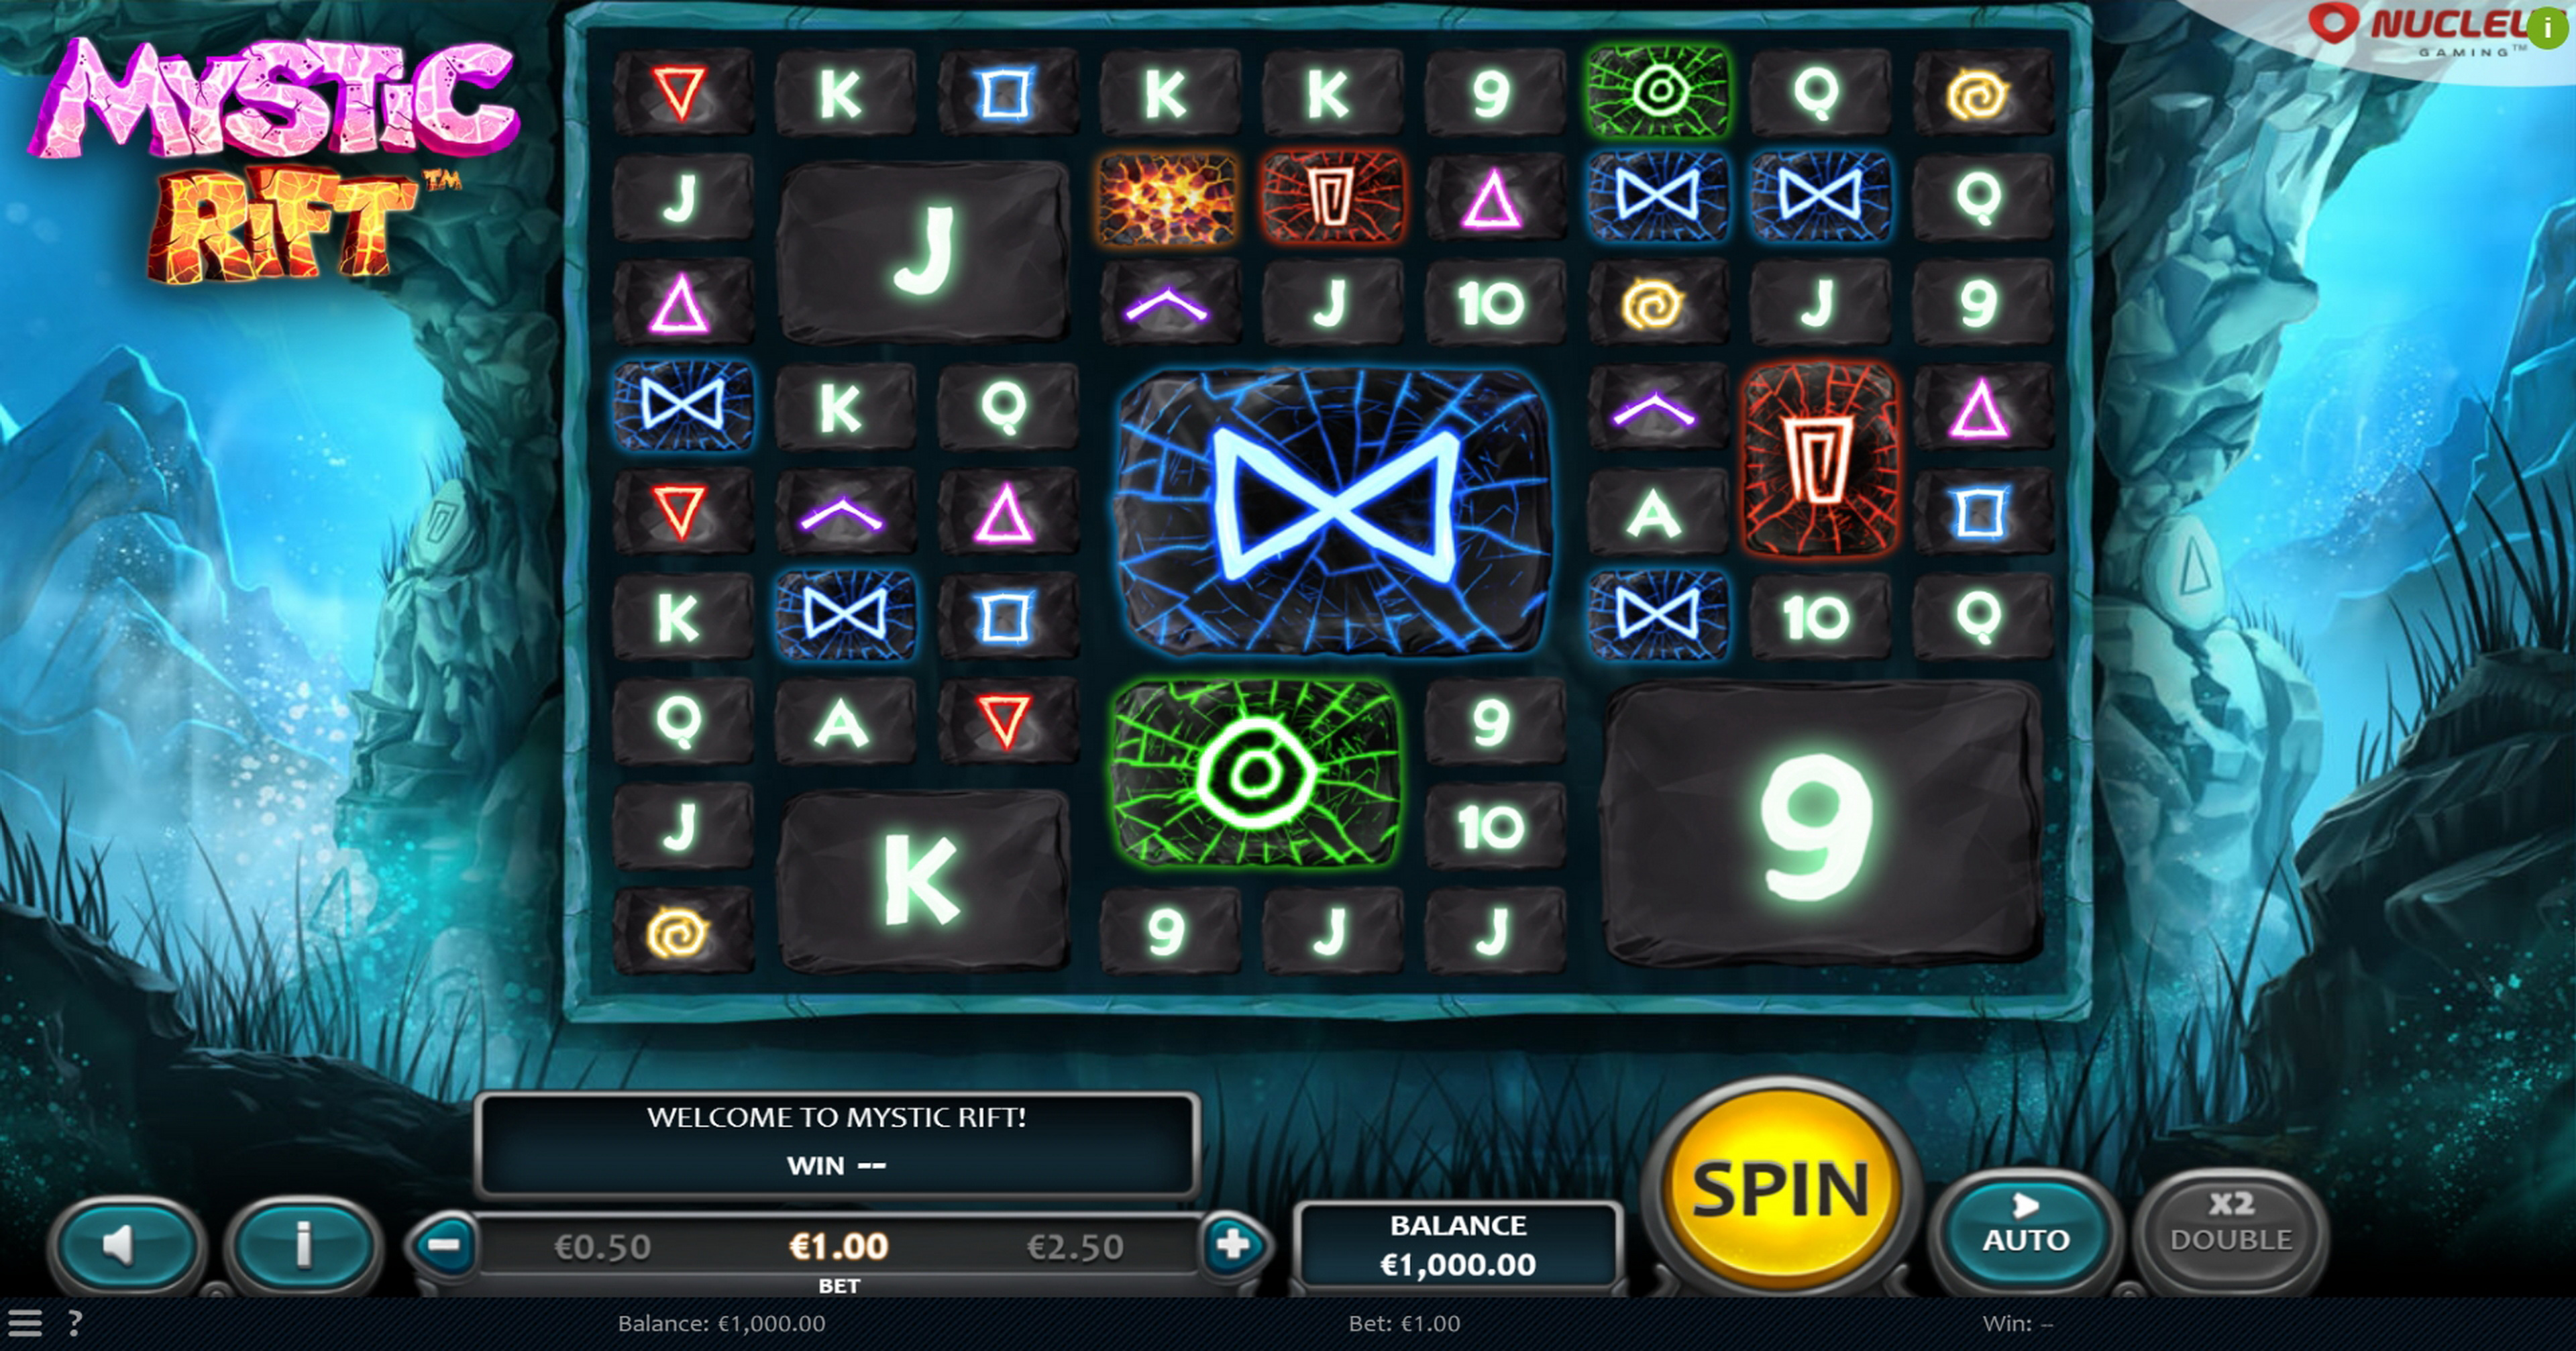 Reels in Mystic Rift Slot Game by Nucleus Gaming